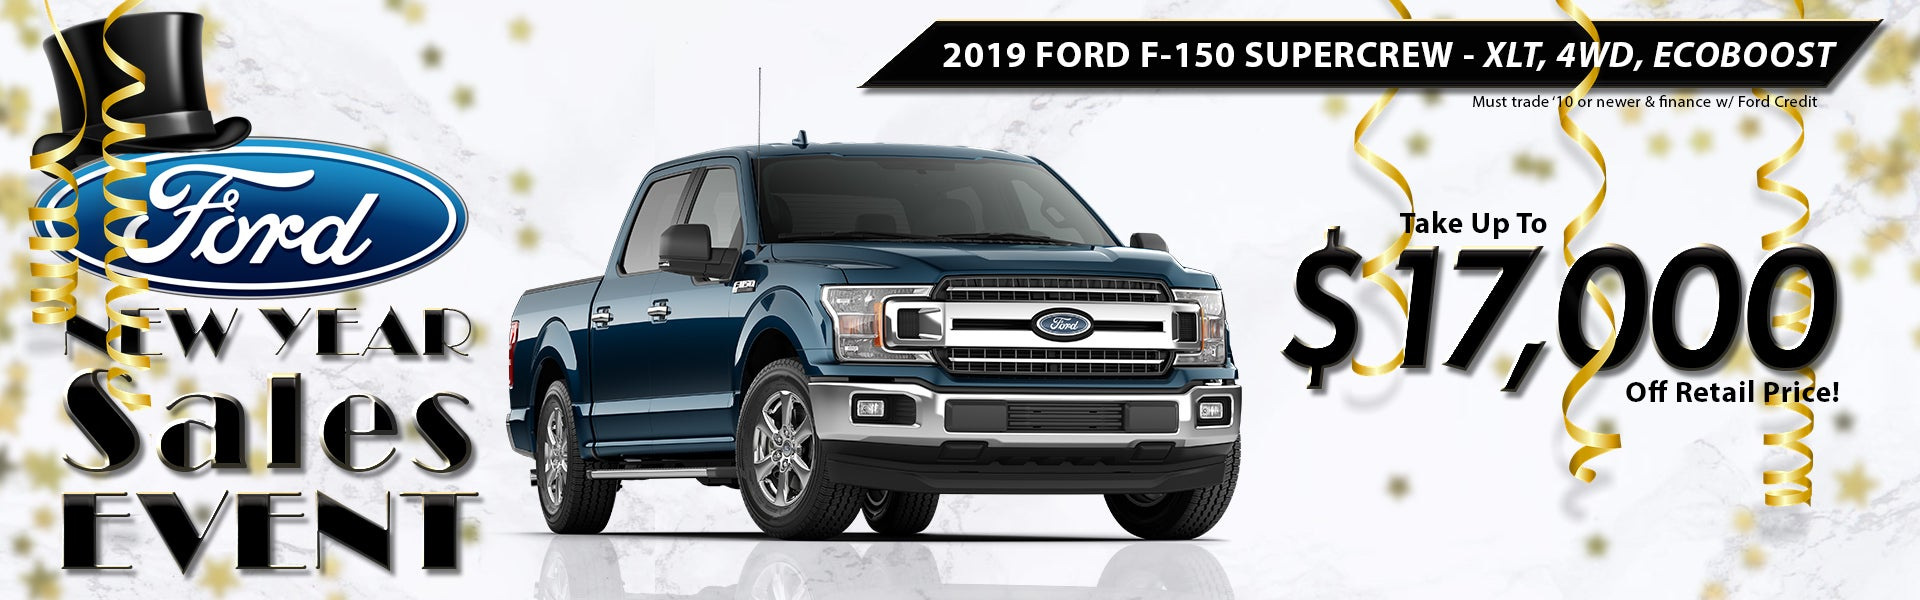 Ford Extended Warranty Premium Care >> Ford Dealer In Apex Nc Used Cars Apex Crossroads Ford